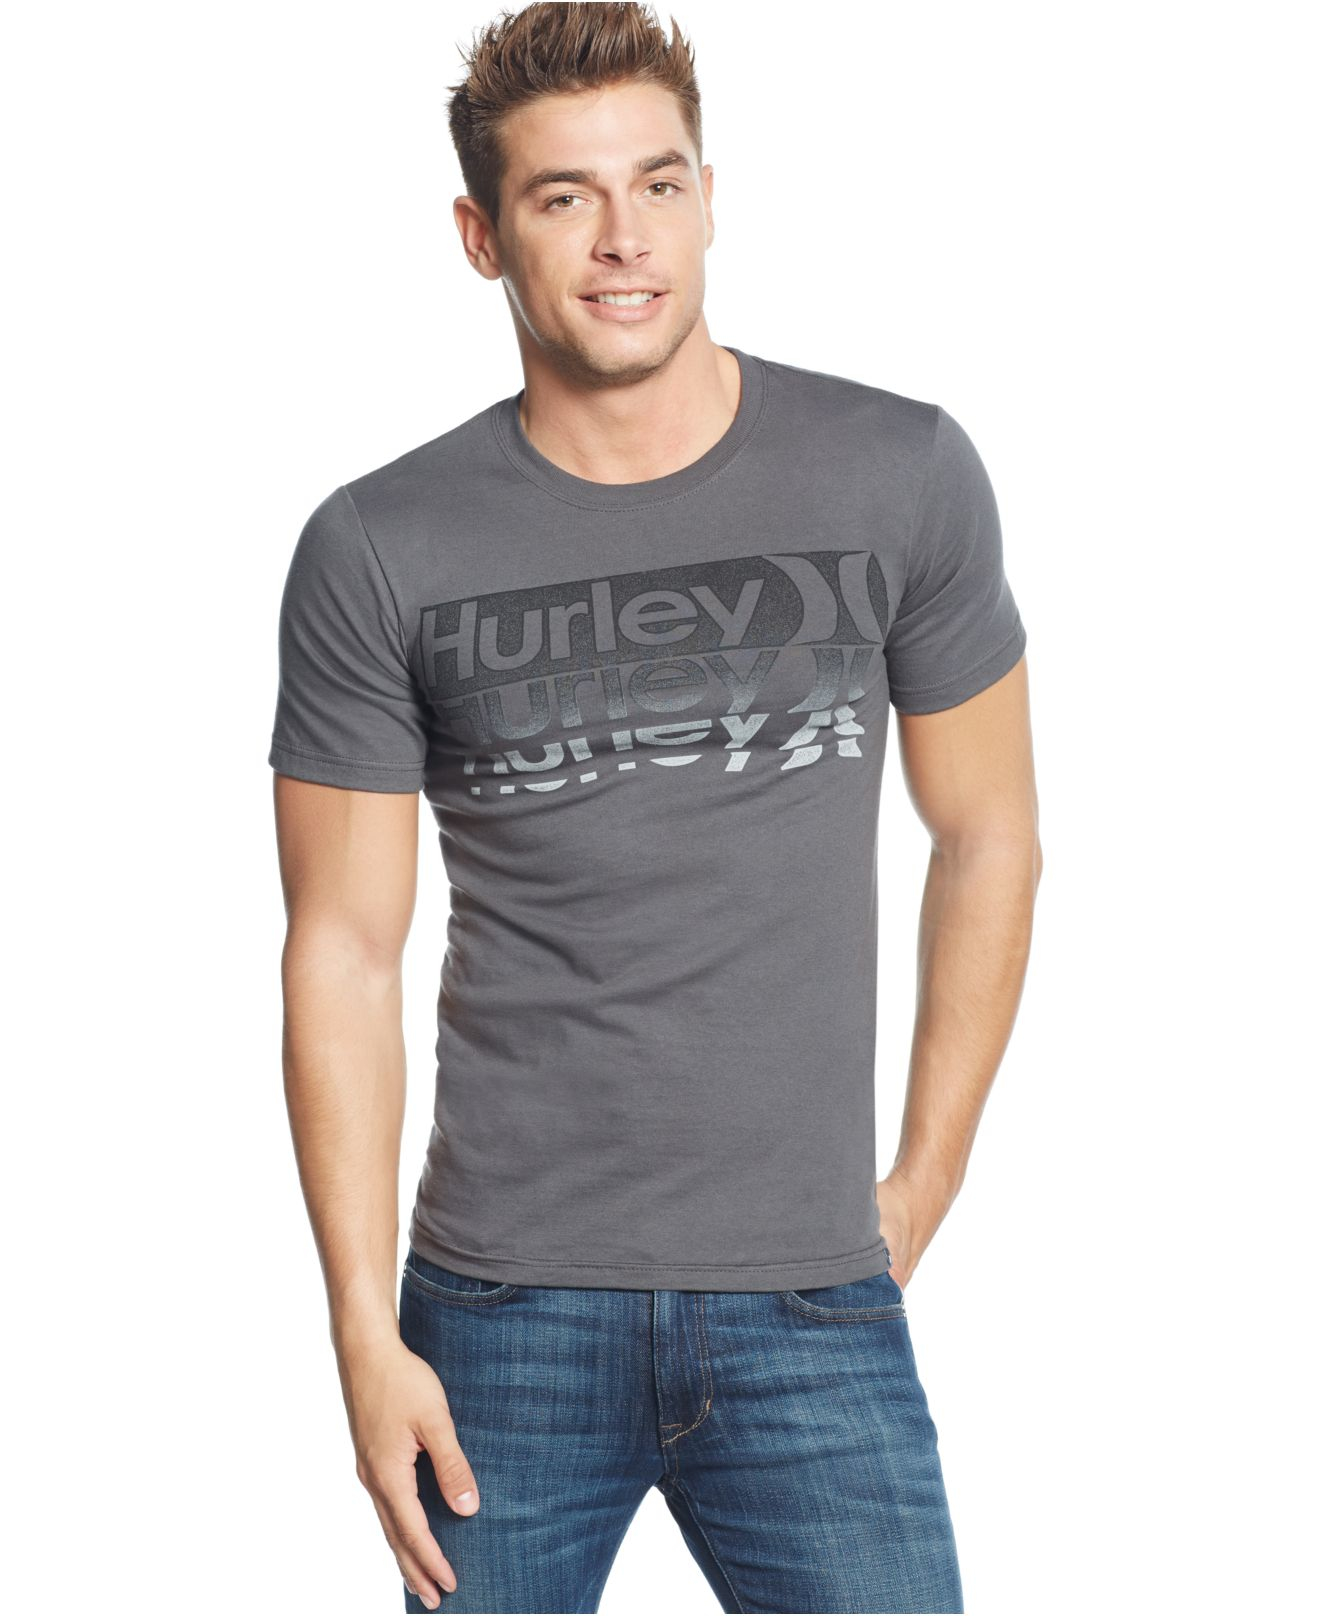 Hurley shirts for men